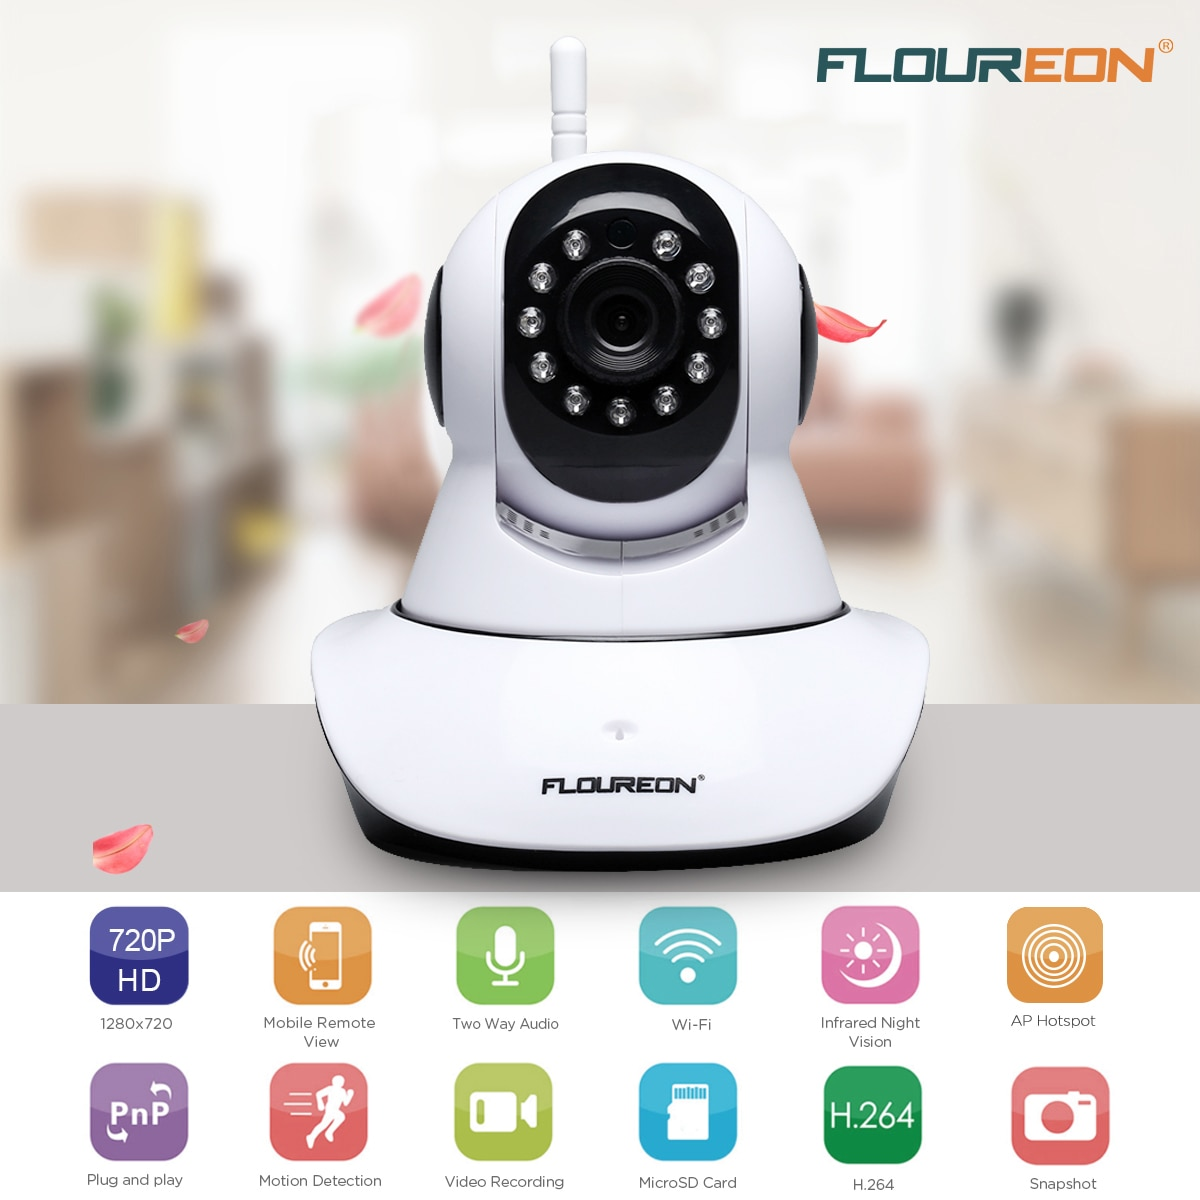 Buy Floureon Indoor WiFi Home Security IP Camera